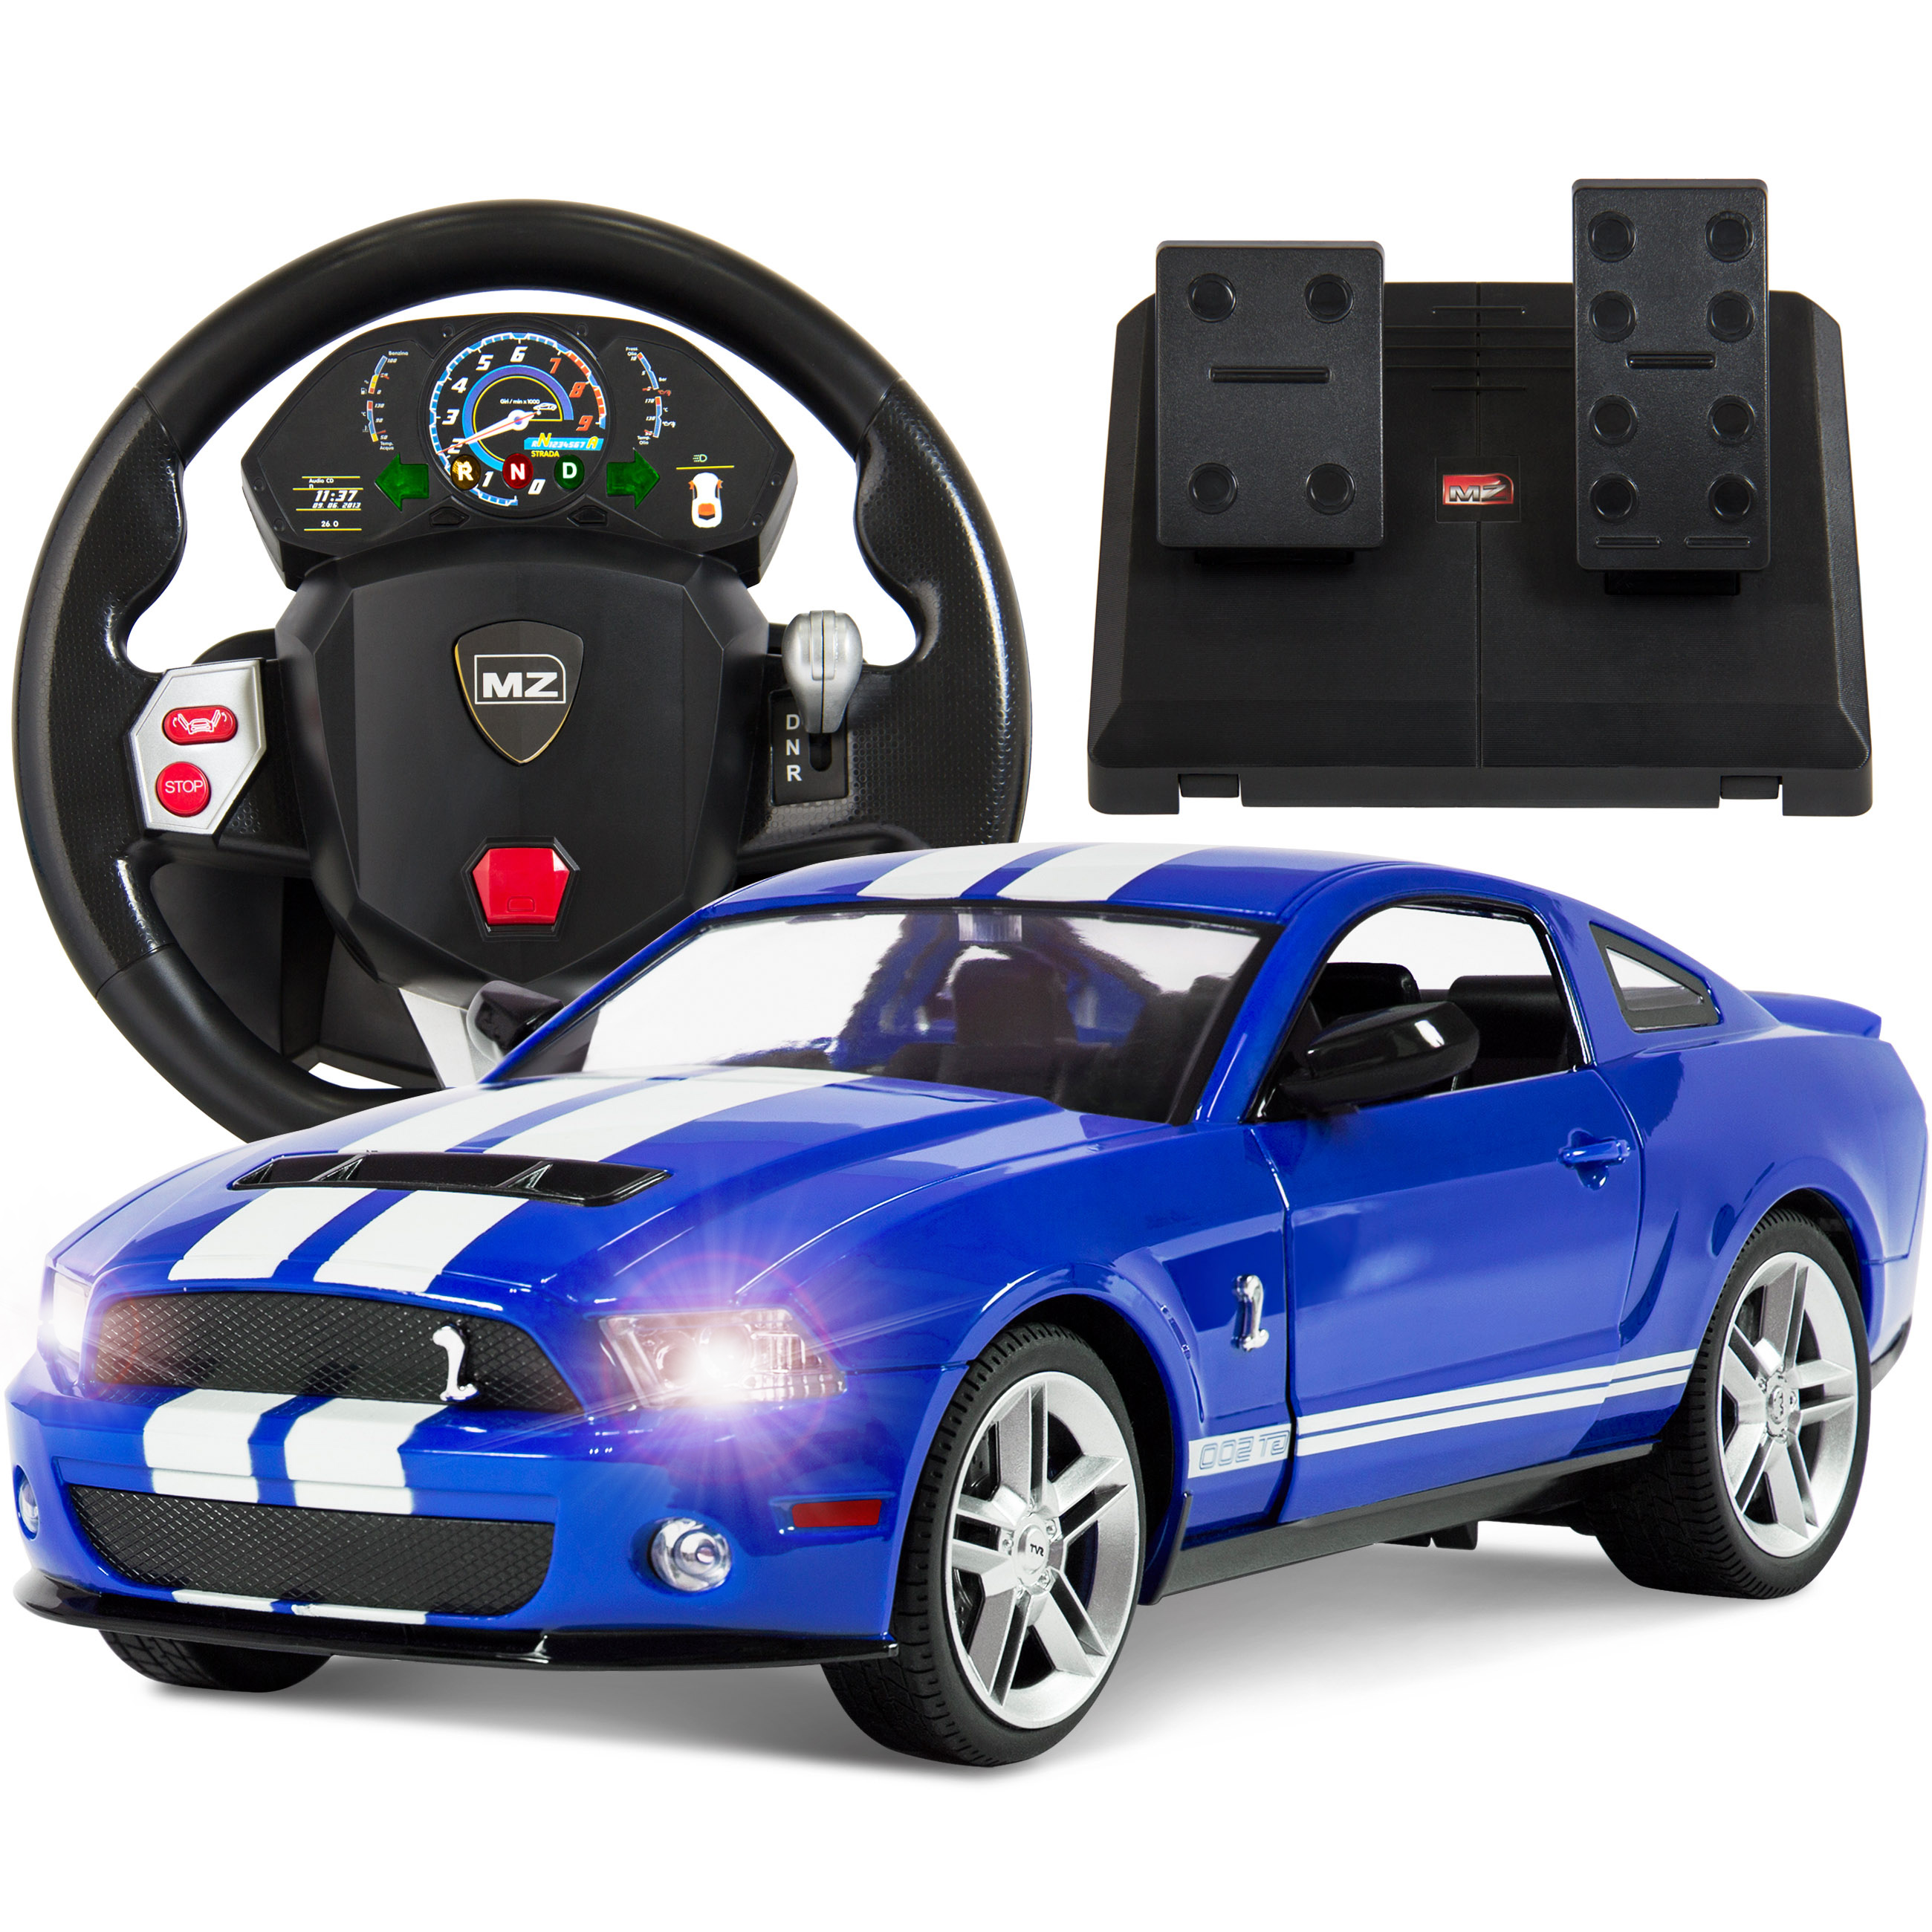 Best Choice Products 1/14 Scale RC Ford Mustang Realistic